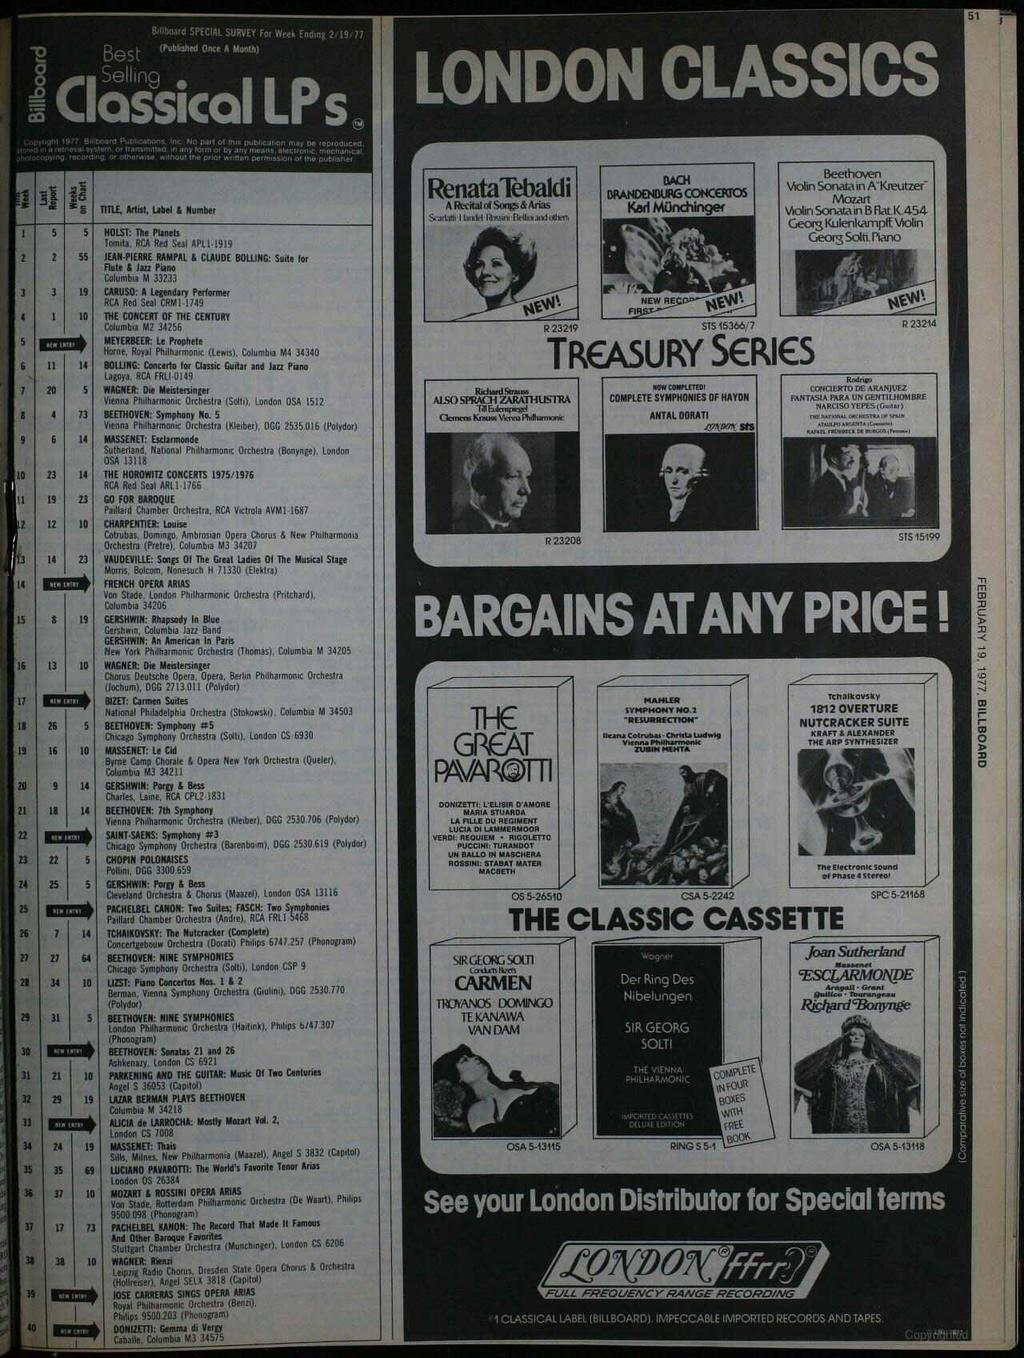 51 7- Best Billboard SPECAL SURVEY For Week Ending 2/19 +77 (Pubkshed Once A Month) Selling Classical LPs, Gopynphl 1977. Brlbaard Publications. nc No Part of his publecalren may De reproduced.